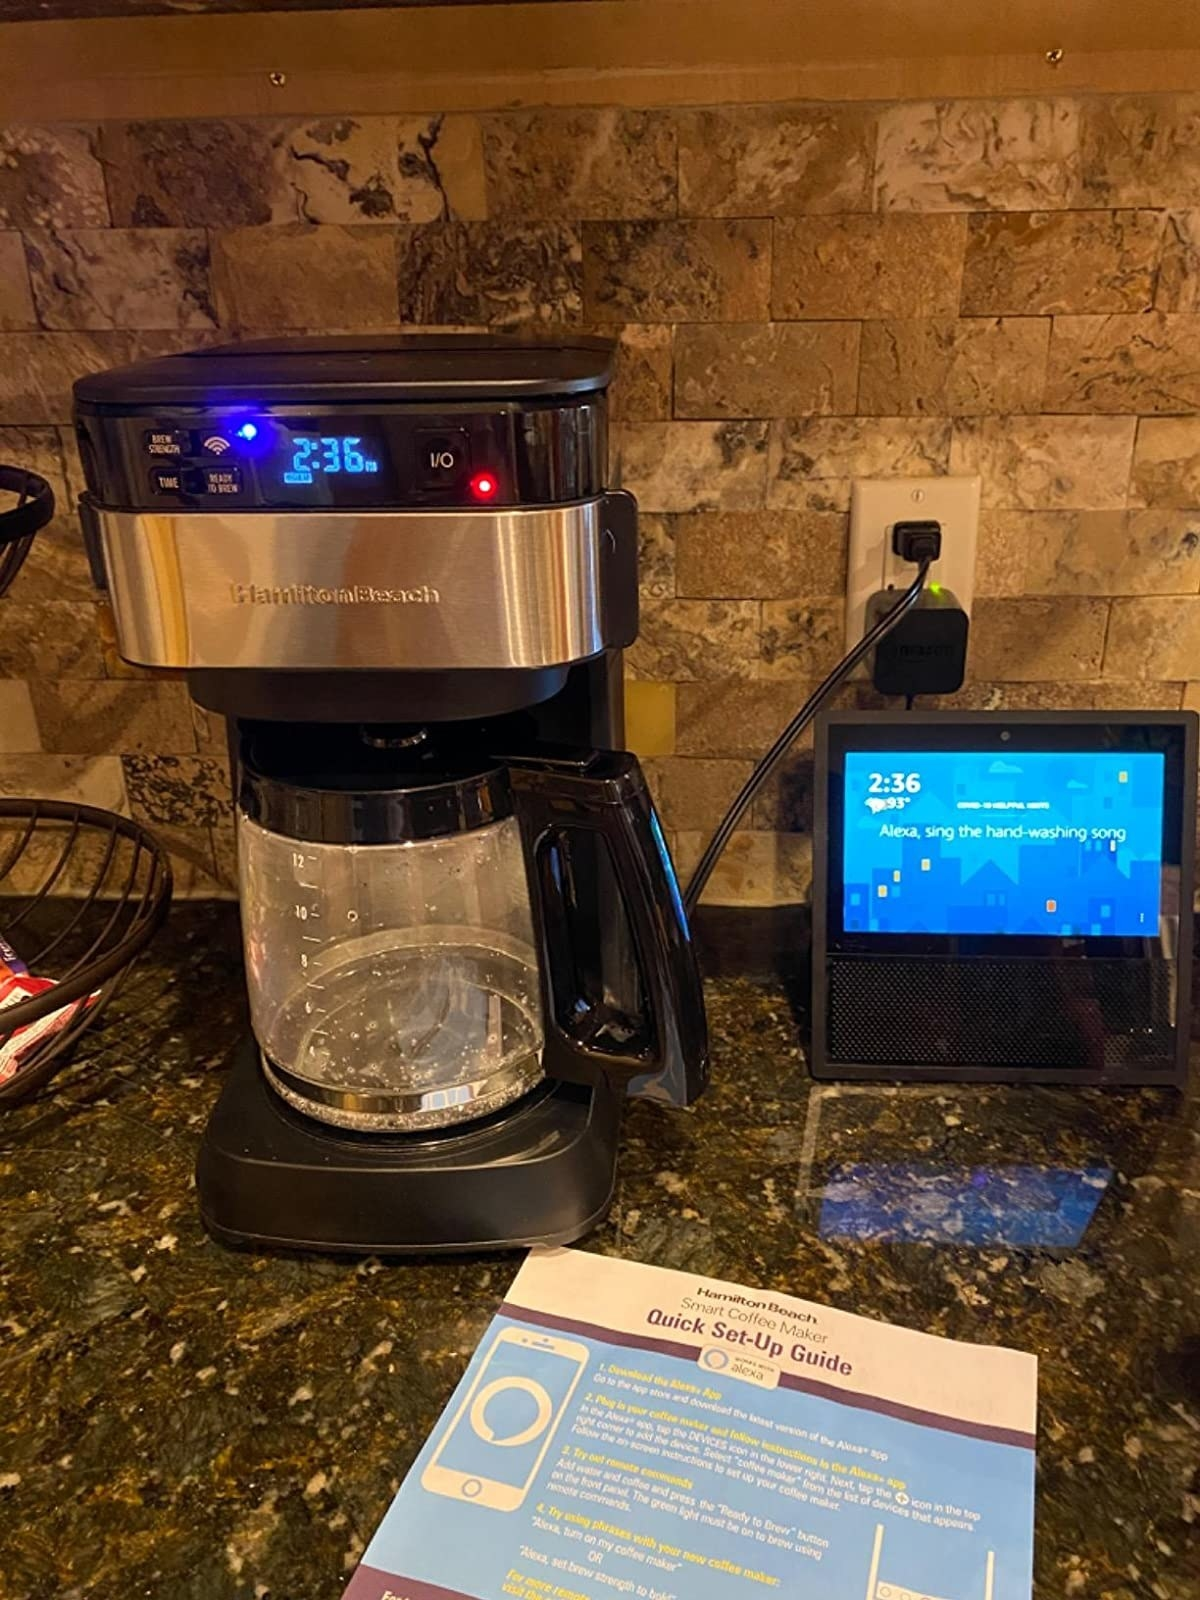 Reviewer photo of coffee maker on kitchen counter next to an Alexa-enabled device